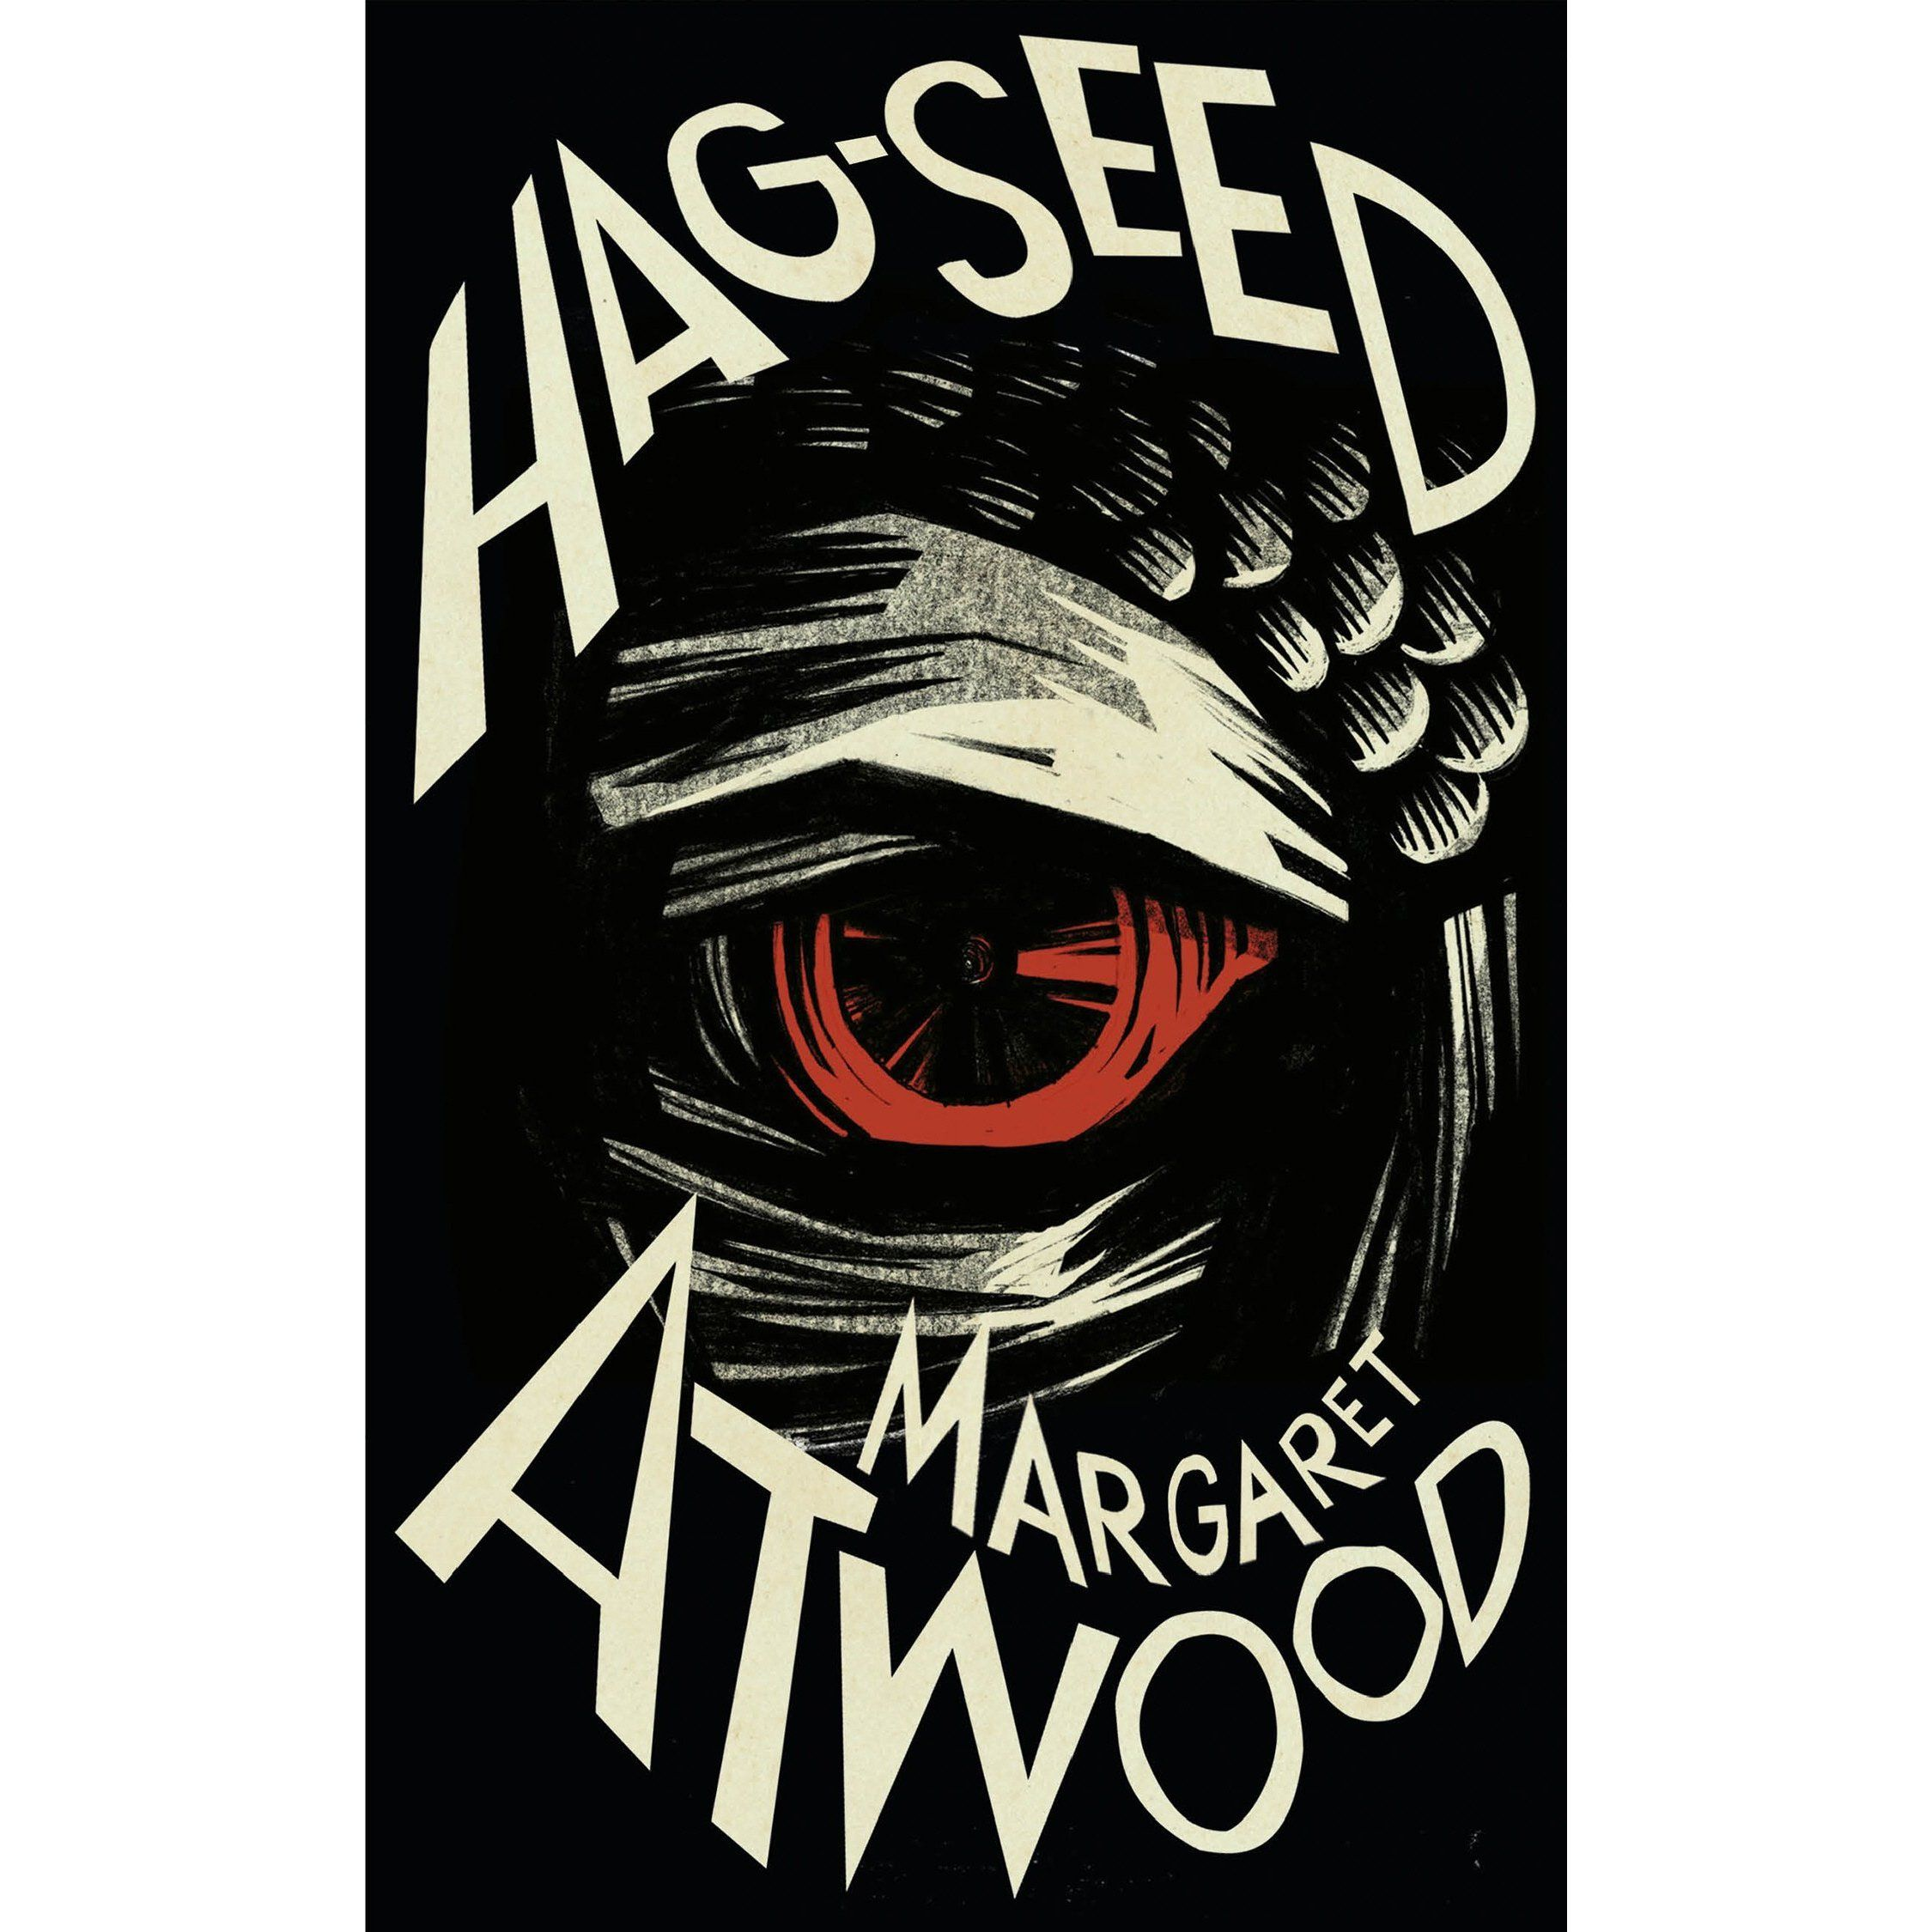 Margaret Atwood Does An Outstanding Job Of Not Only Rewriting